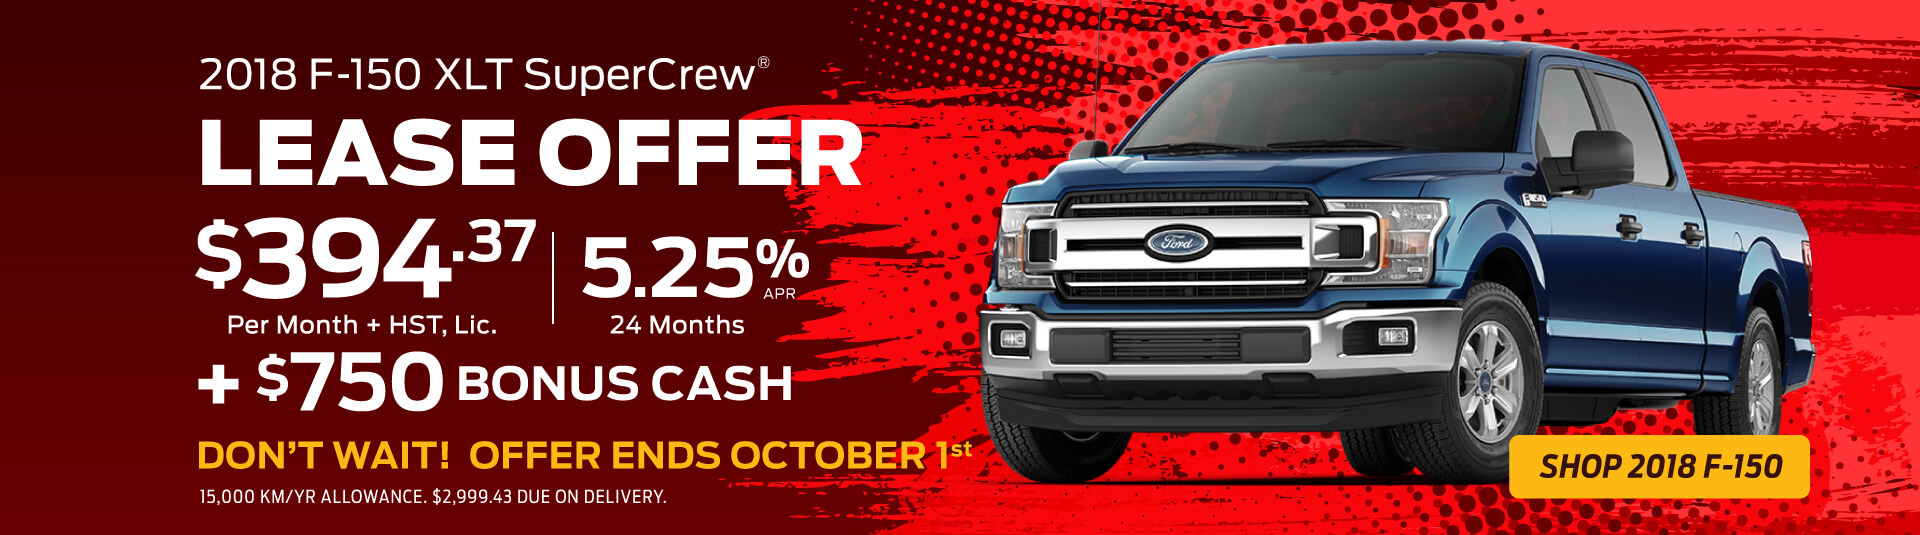 2018 Ford F-150 XLT Offers